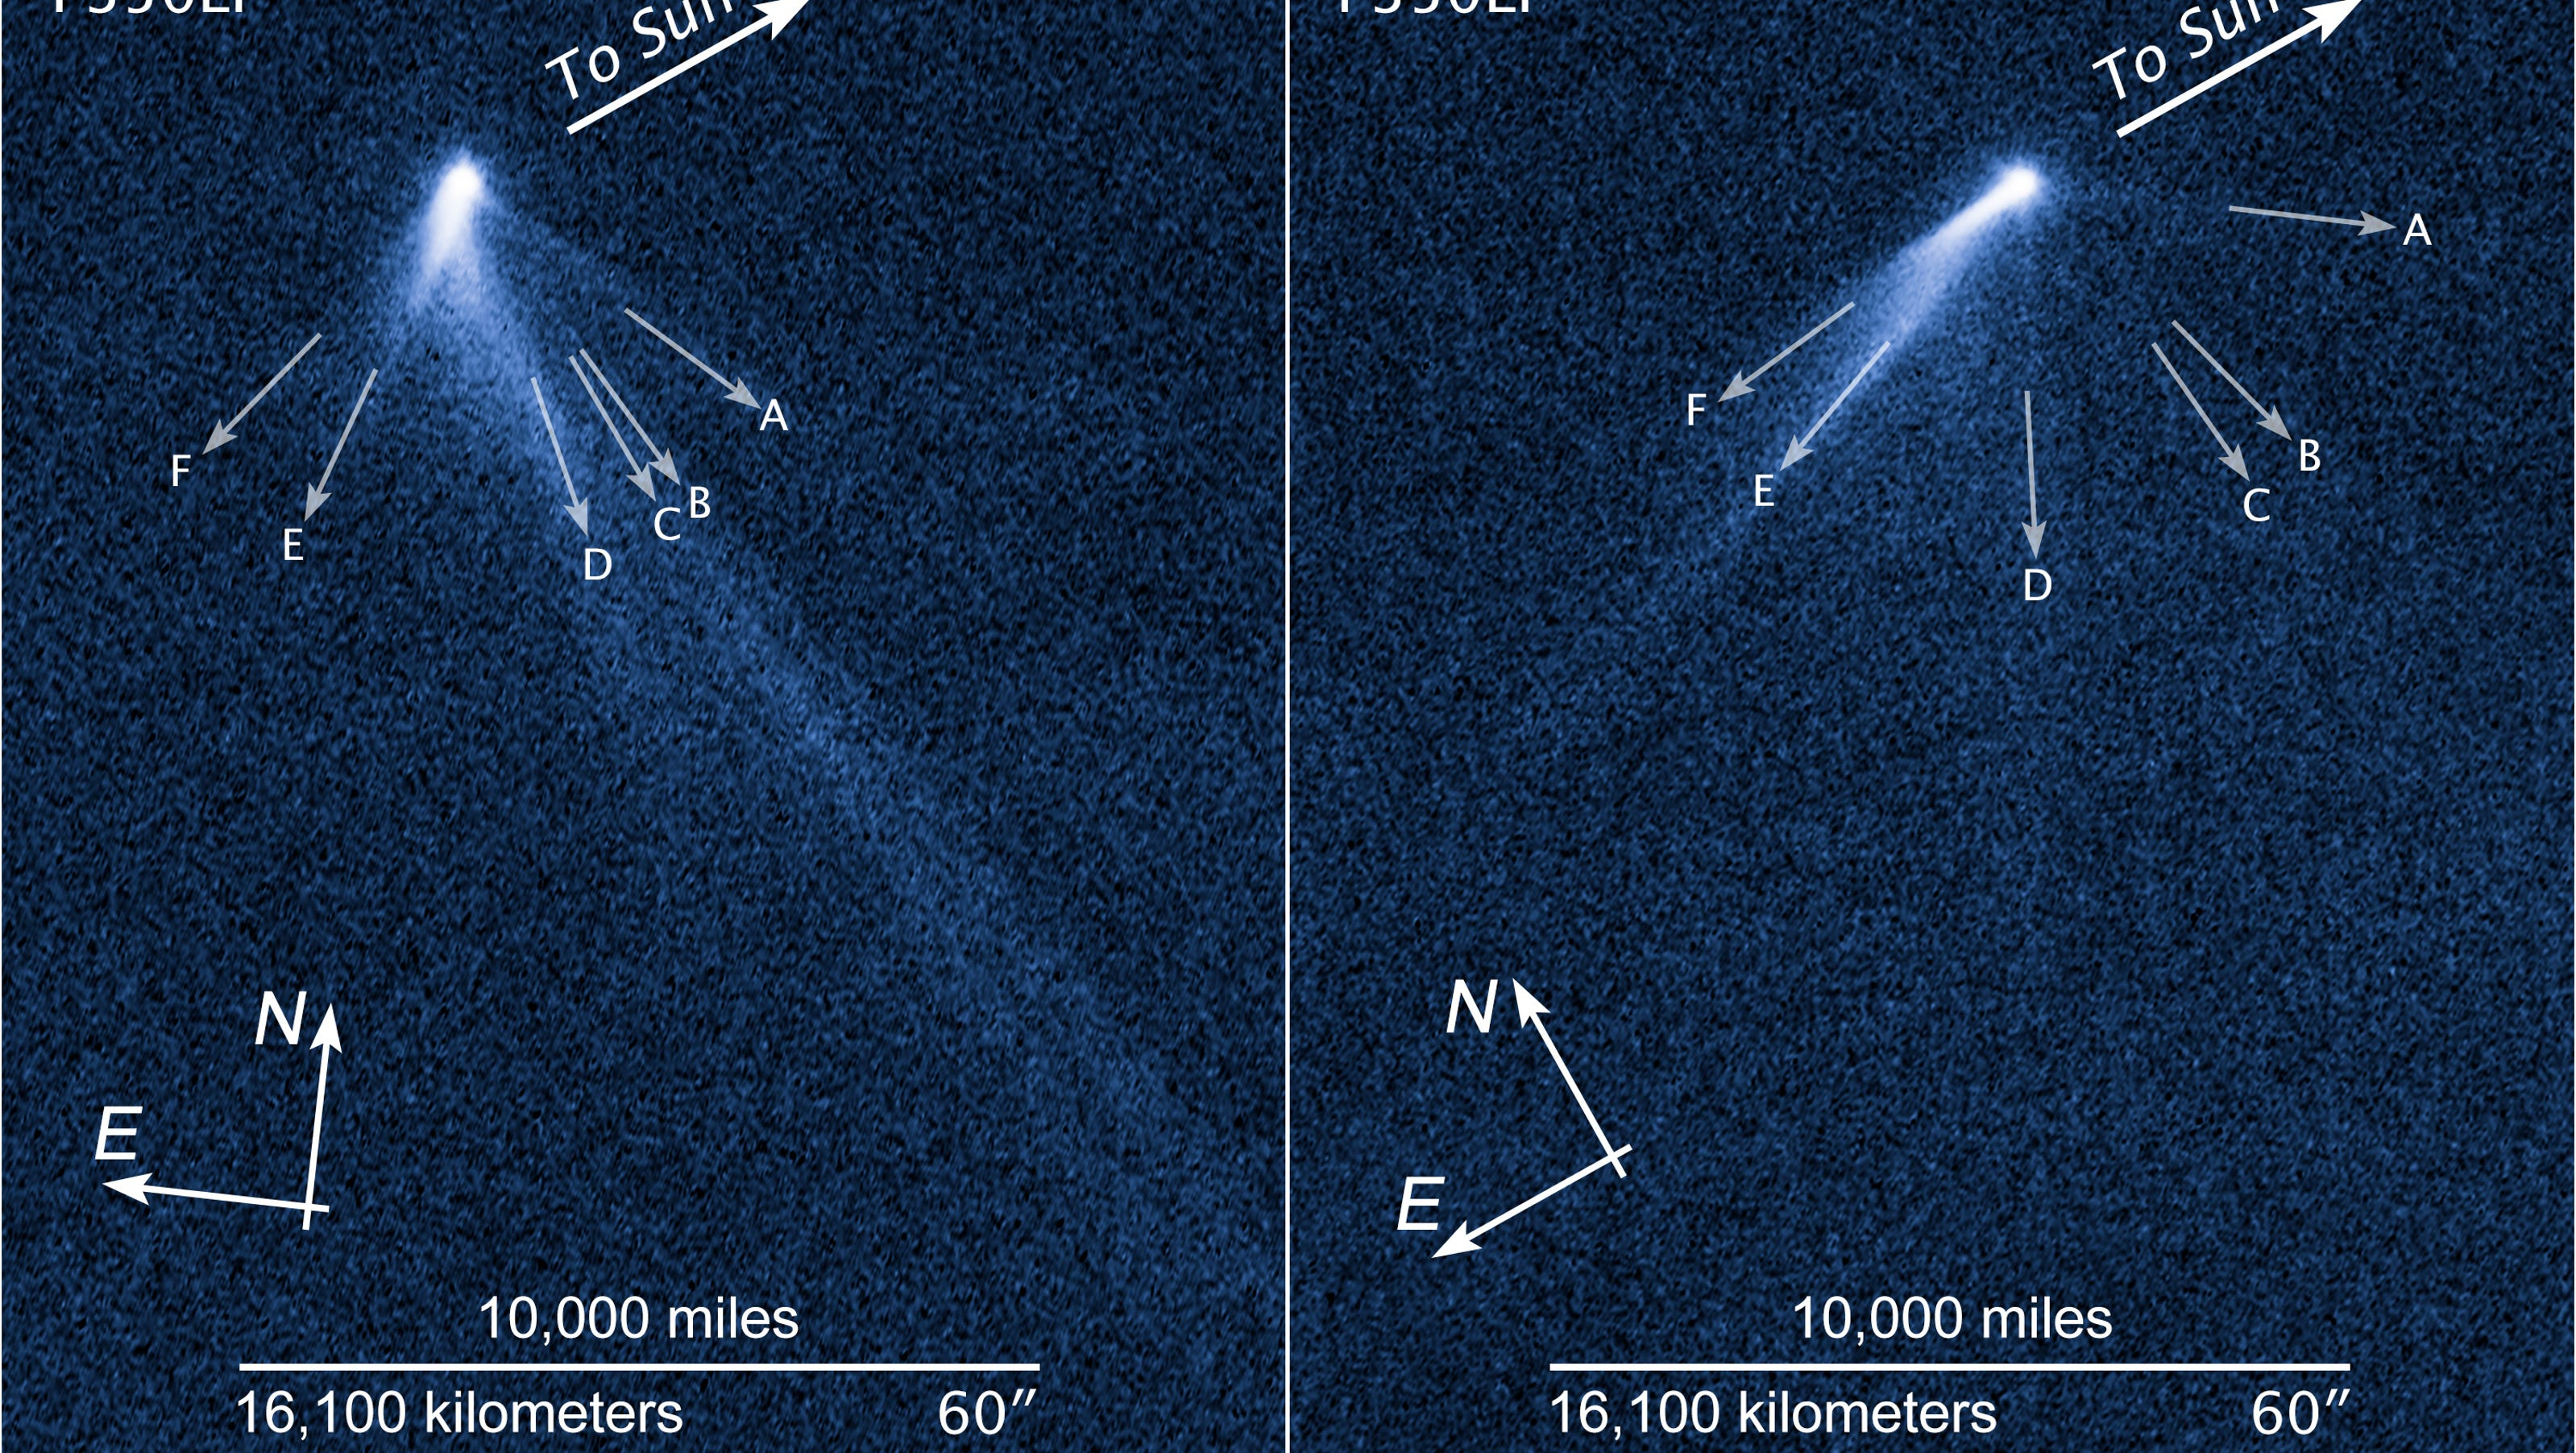 Weird asteroid discovered with 6 comet-like tails